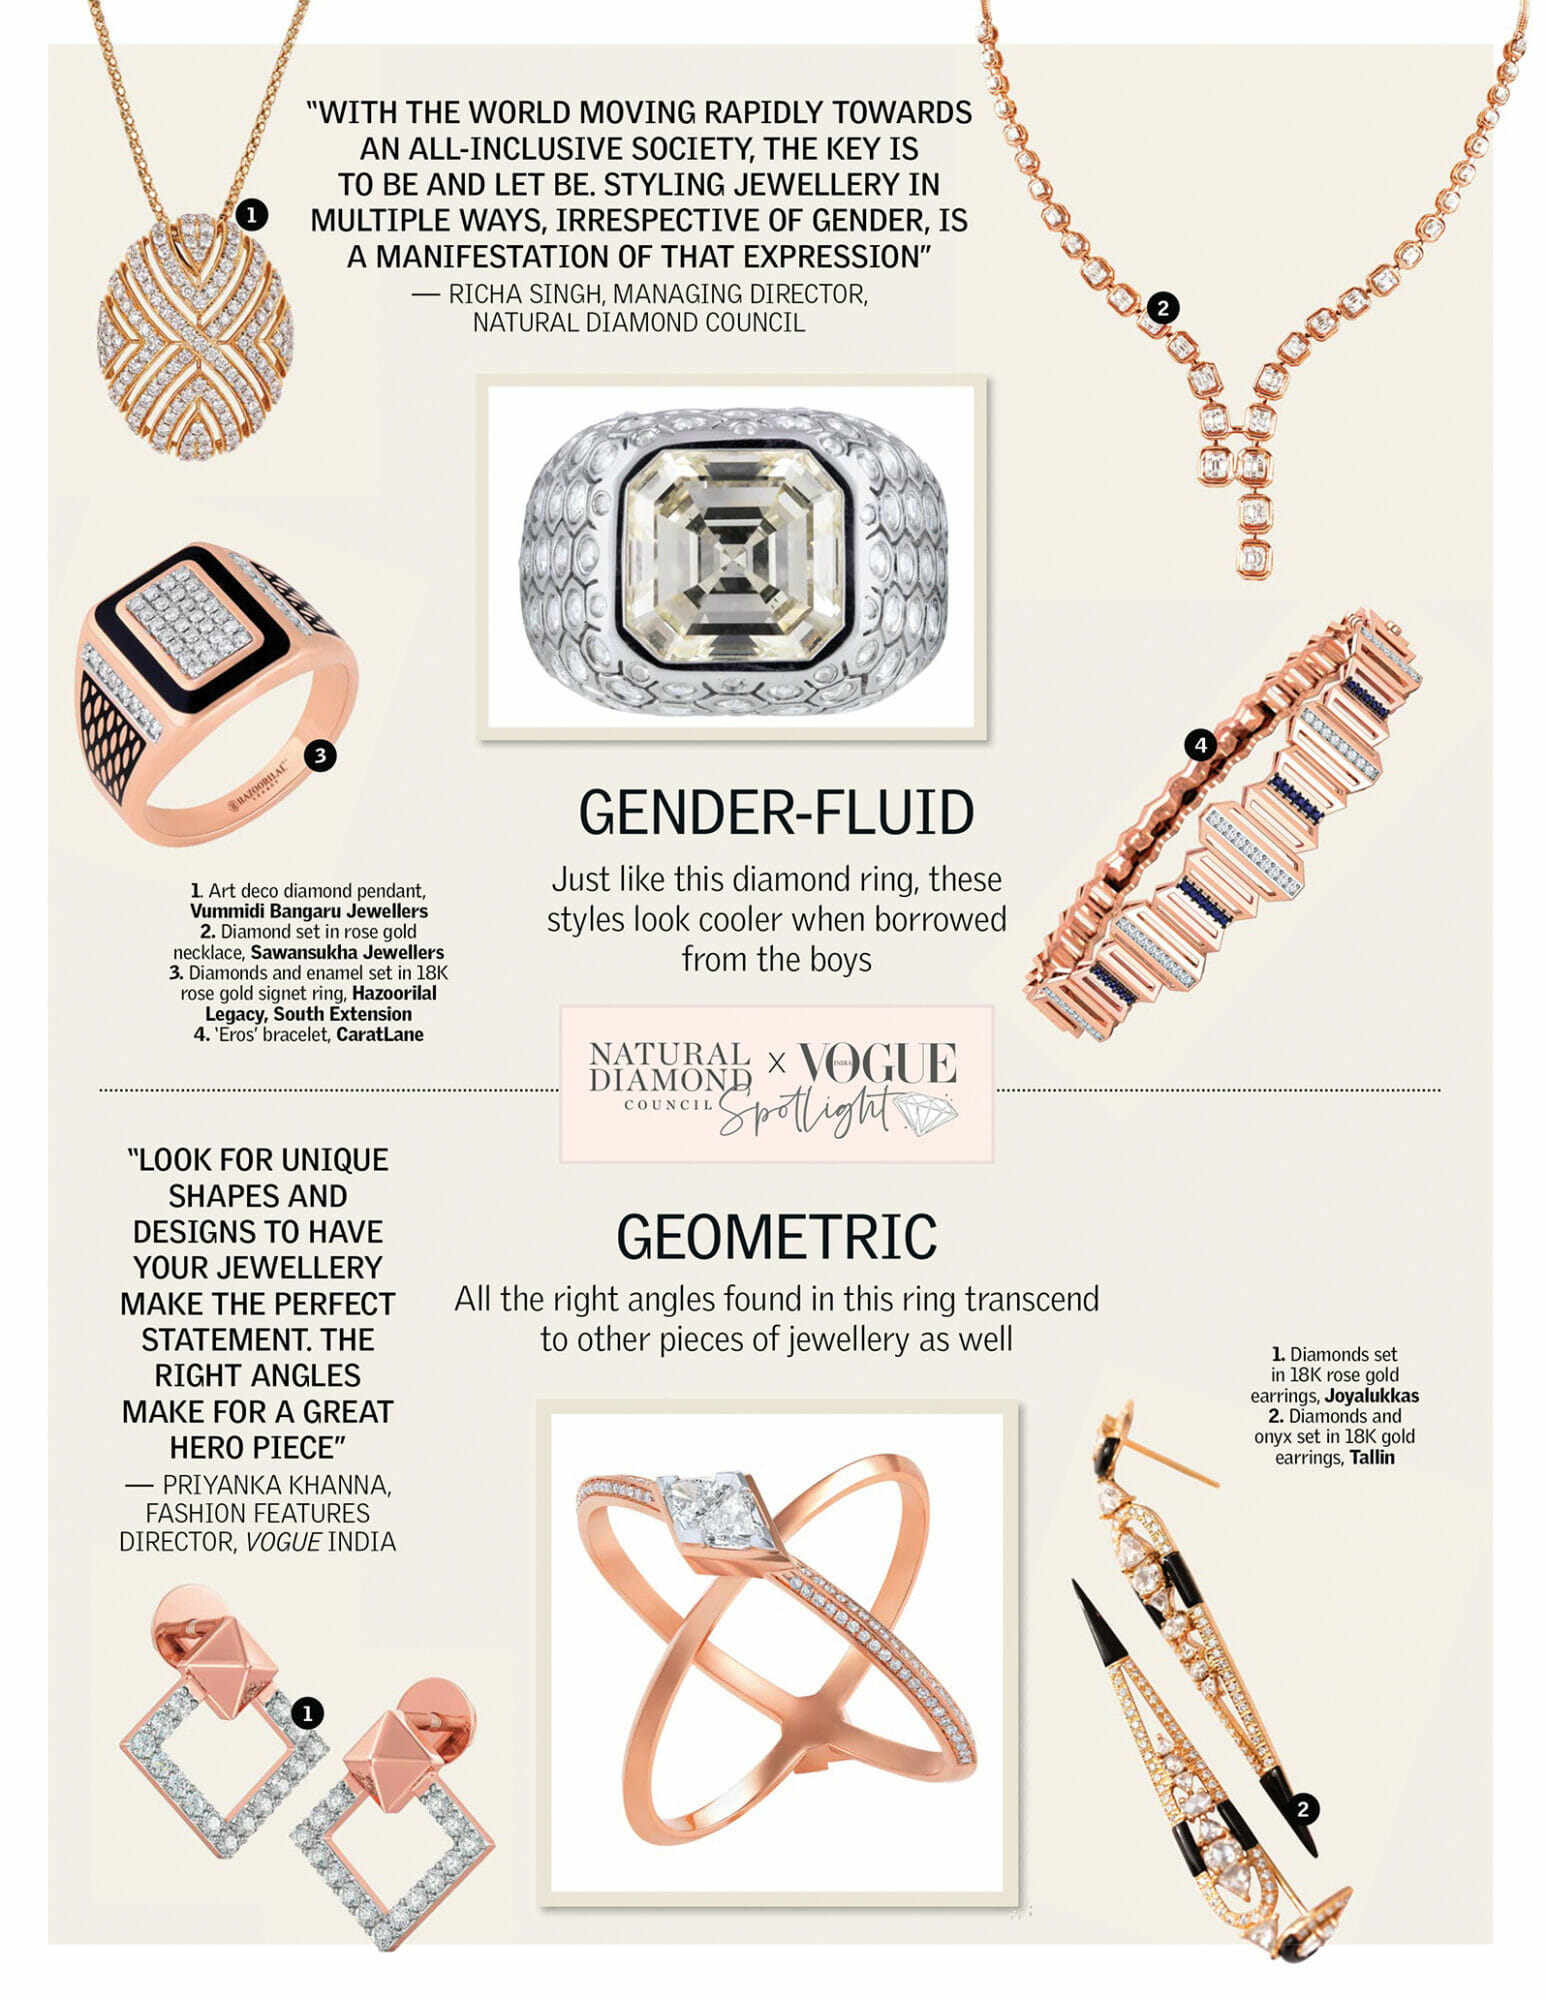 vogue-ndc-jewellery-trend-report-7